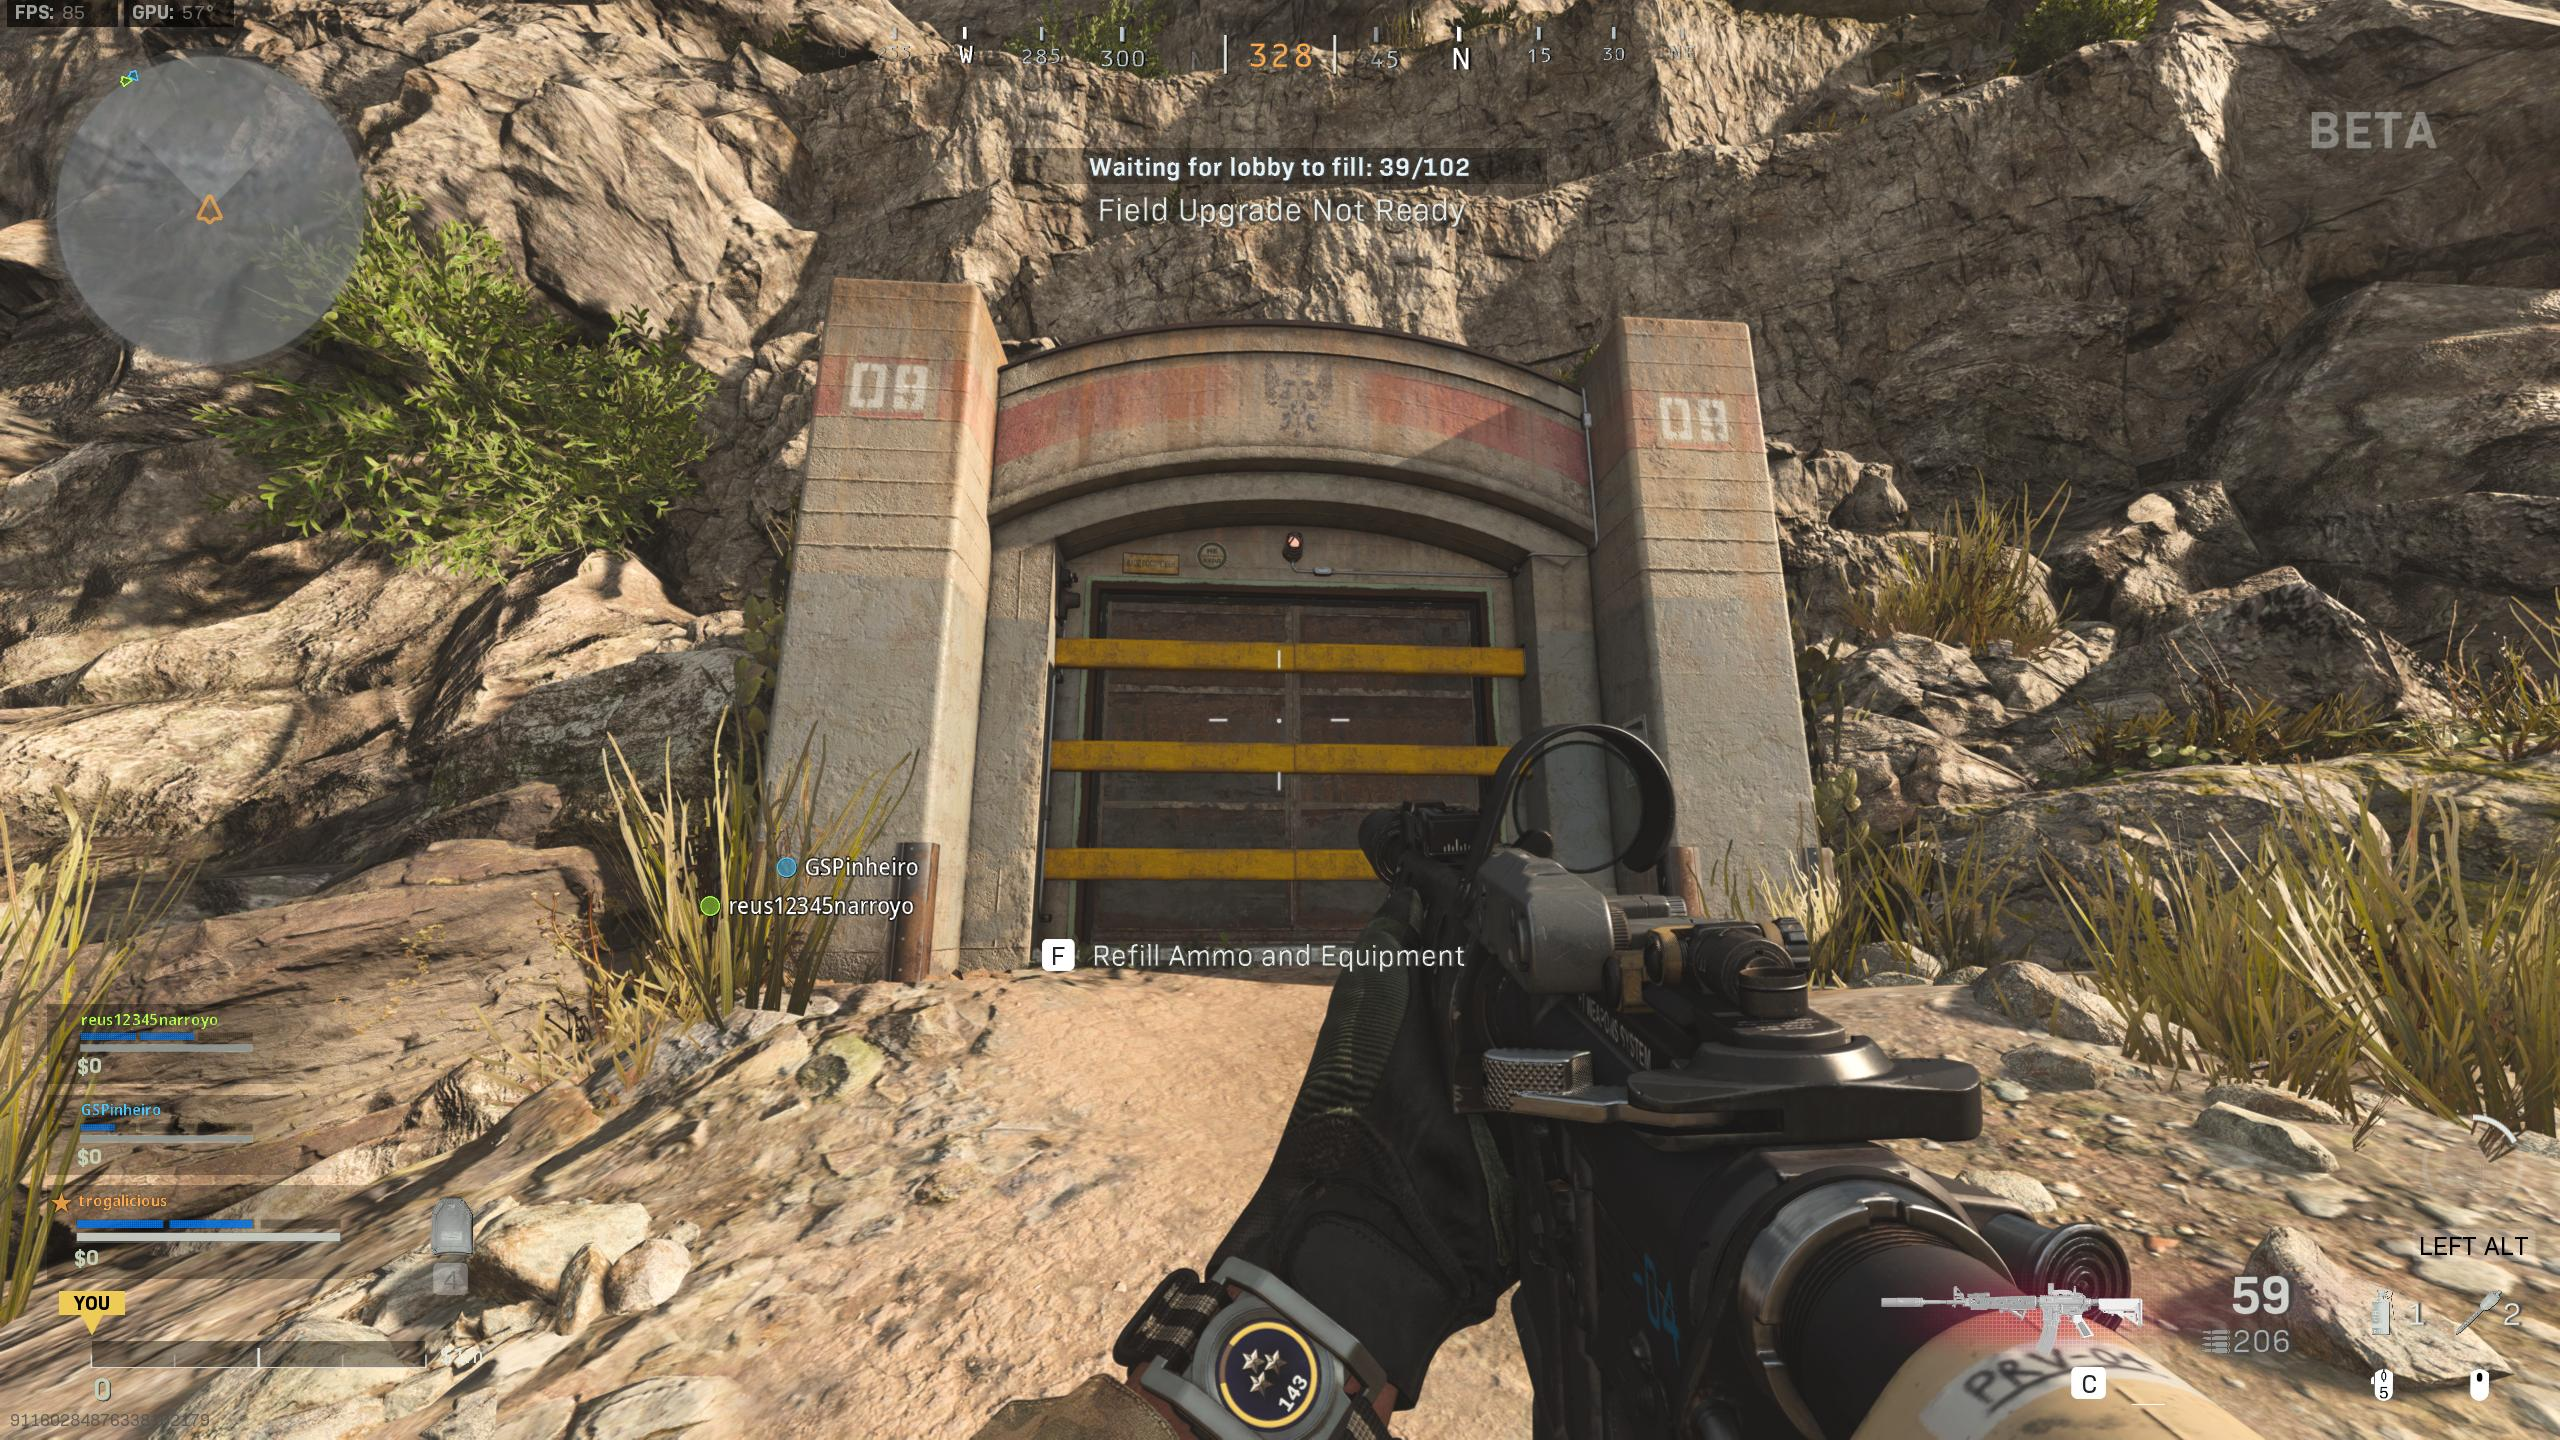 Call of Duty Bunker Doors